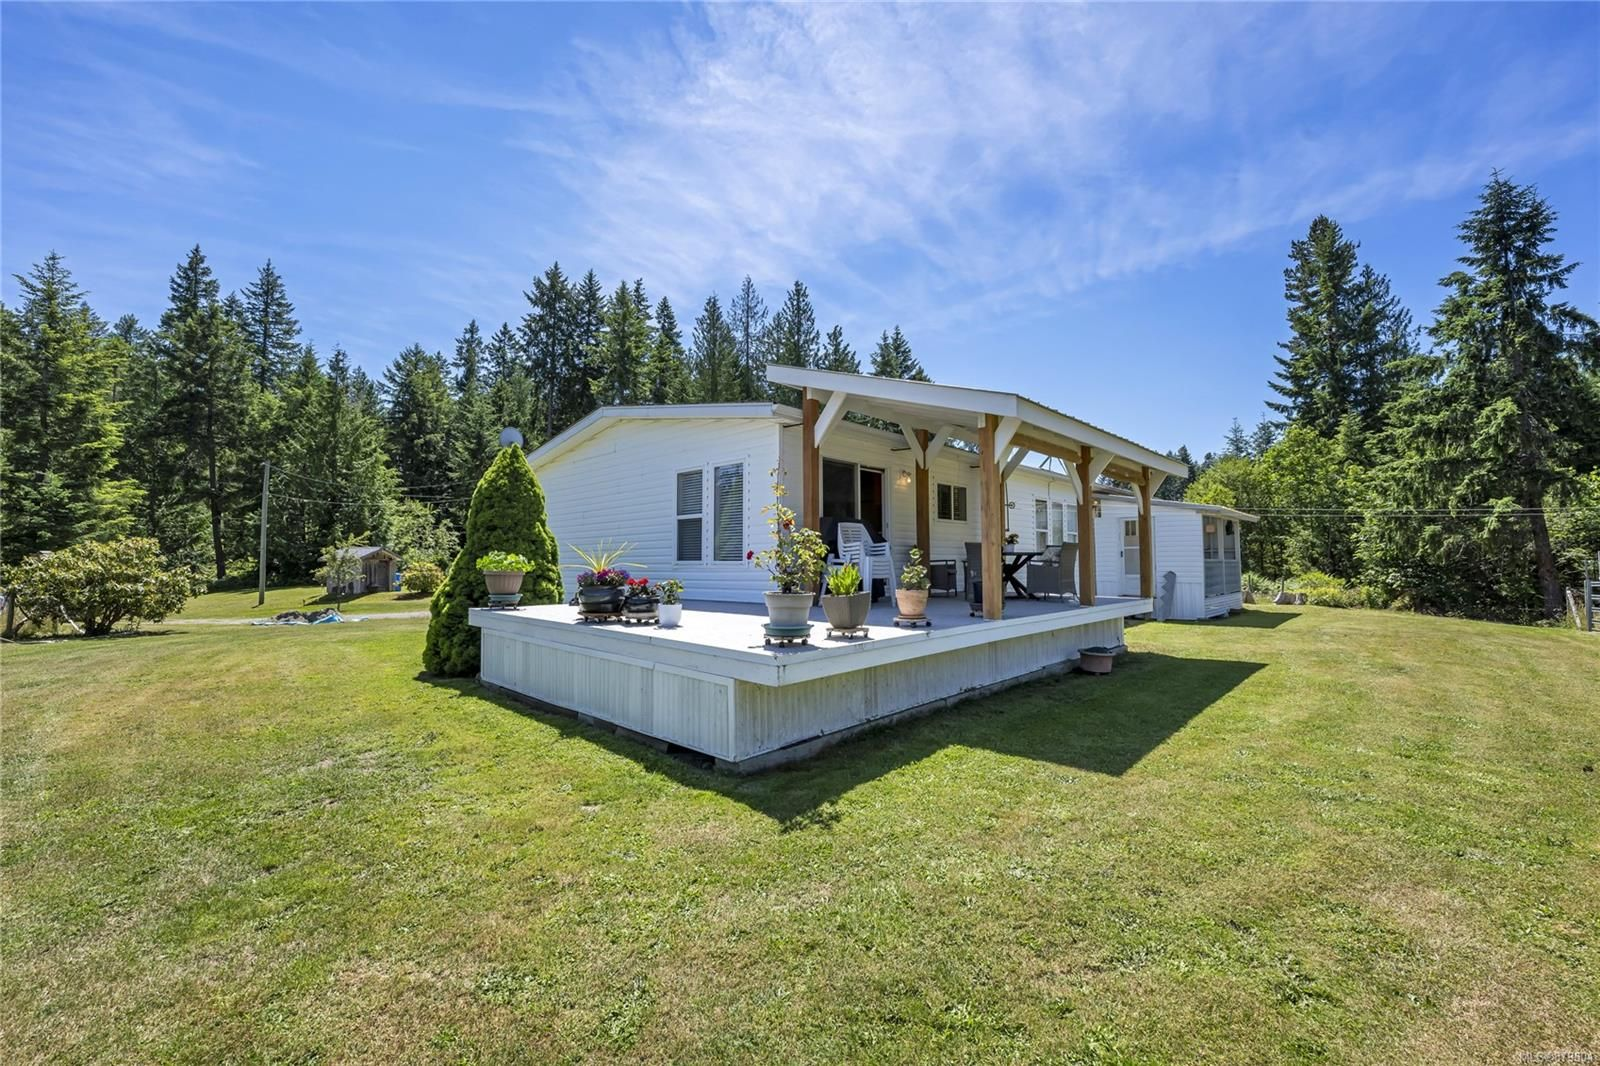 Photo 55: Photos: 3596 Riverside Rd in : ML Cobble Hill Manufactured Home for sale (Malahat & Area)  : MLS®# 879804